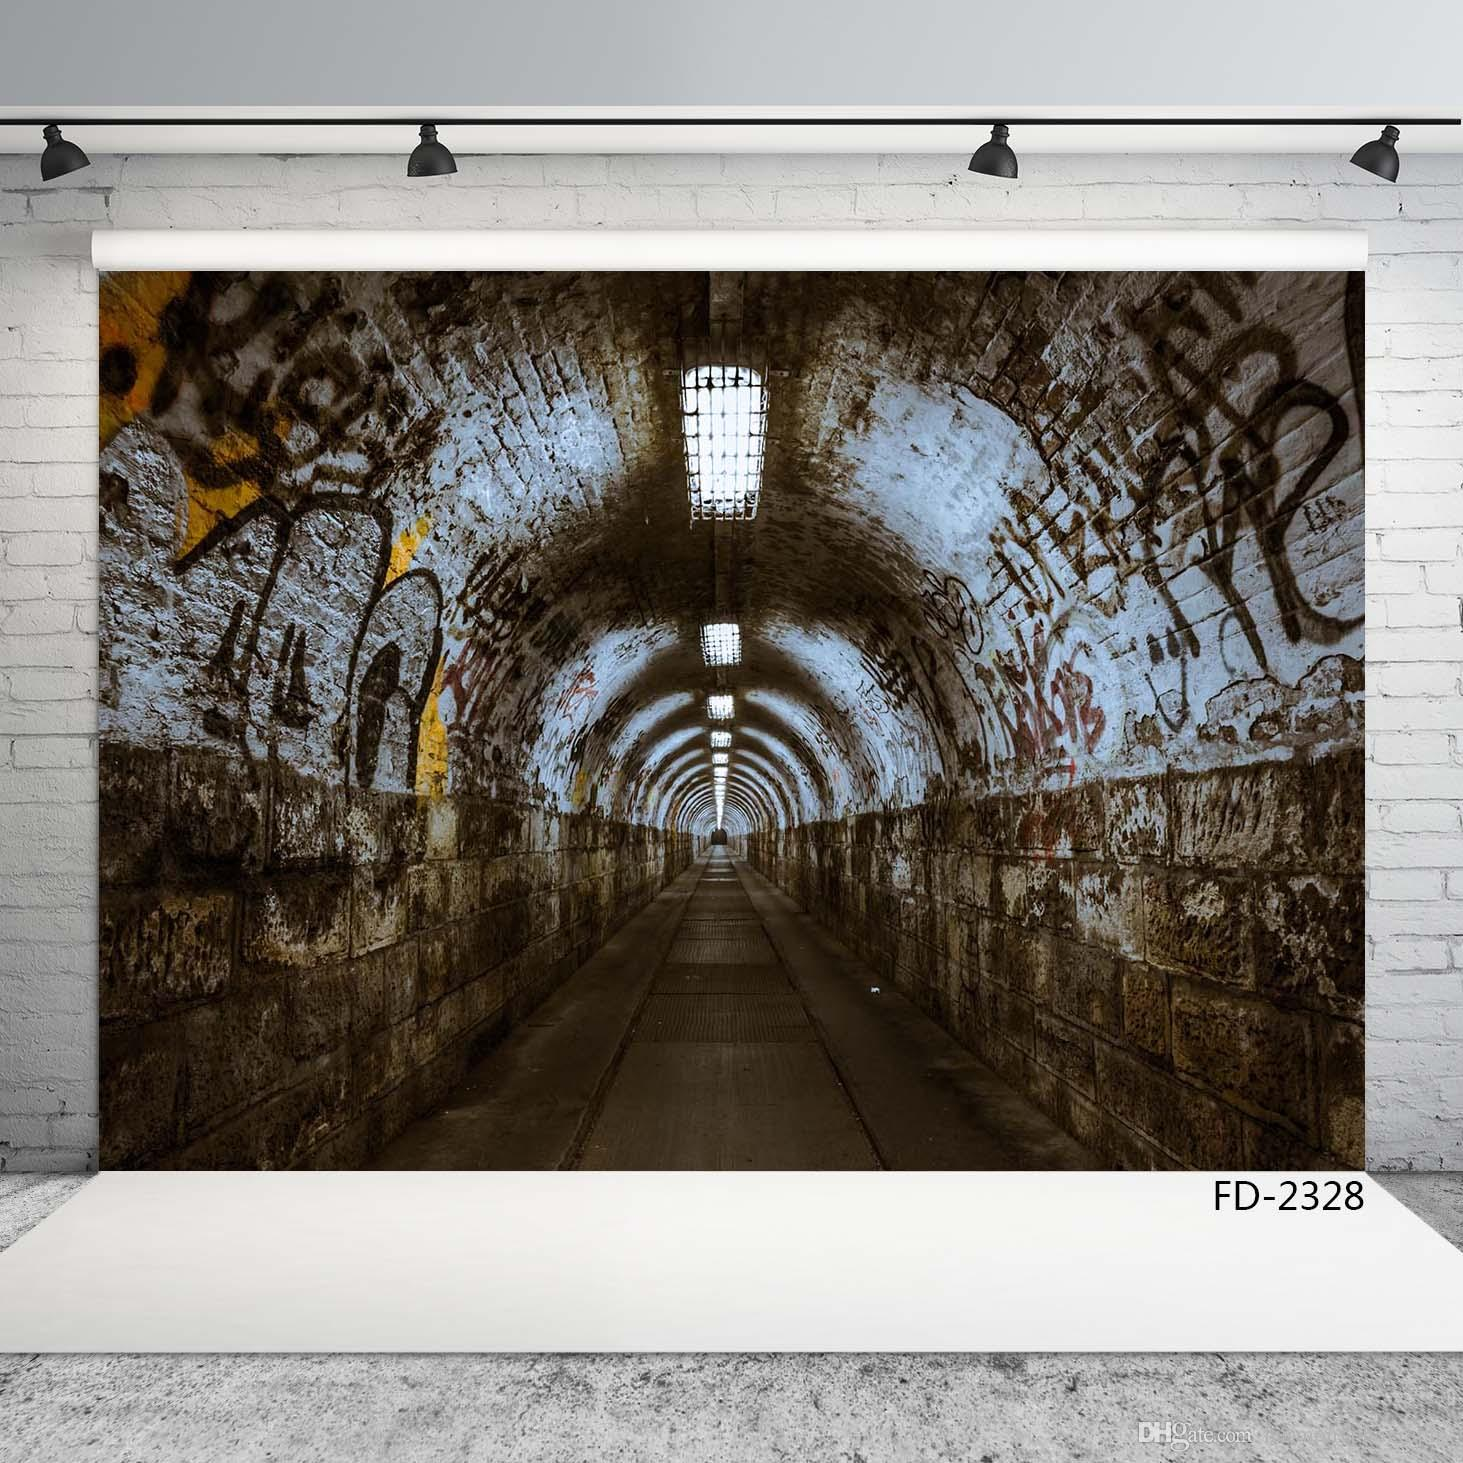 photographic backdrop vintage vintage graffiti tunnel backdrop for photo shoot 7X5ft vinyl cloth backdrops for photo studio camera photo